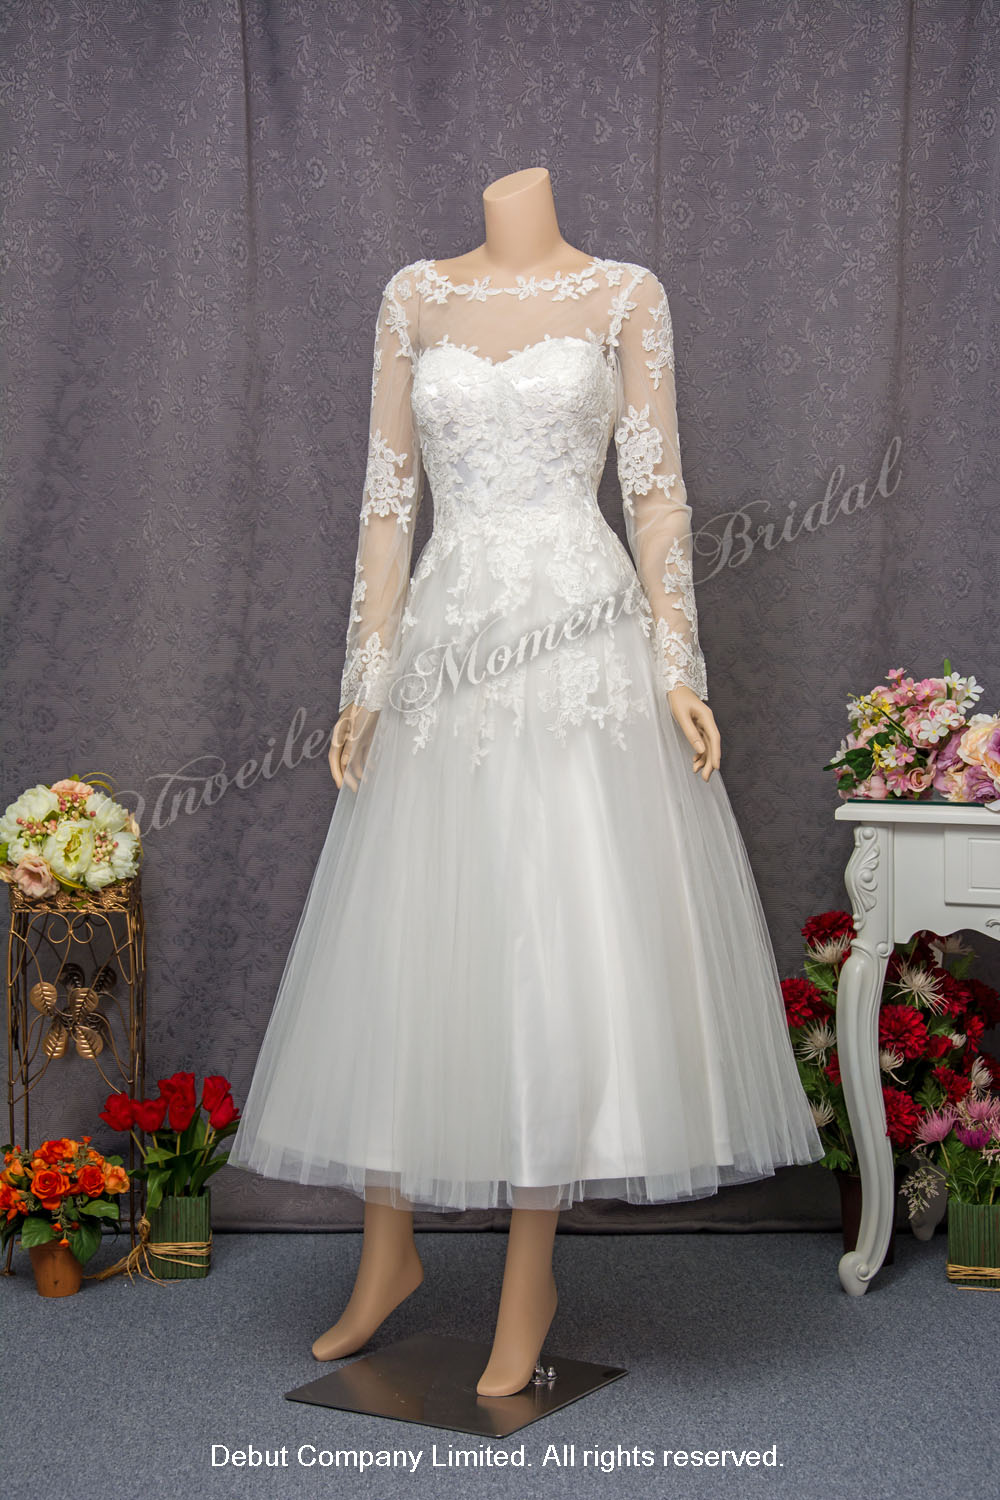 Long Sleeves Carefree Wedding Dress 長袖短款輕婚紗